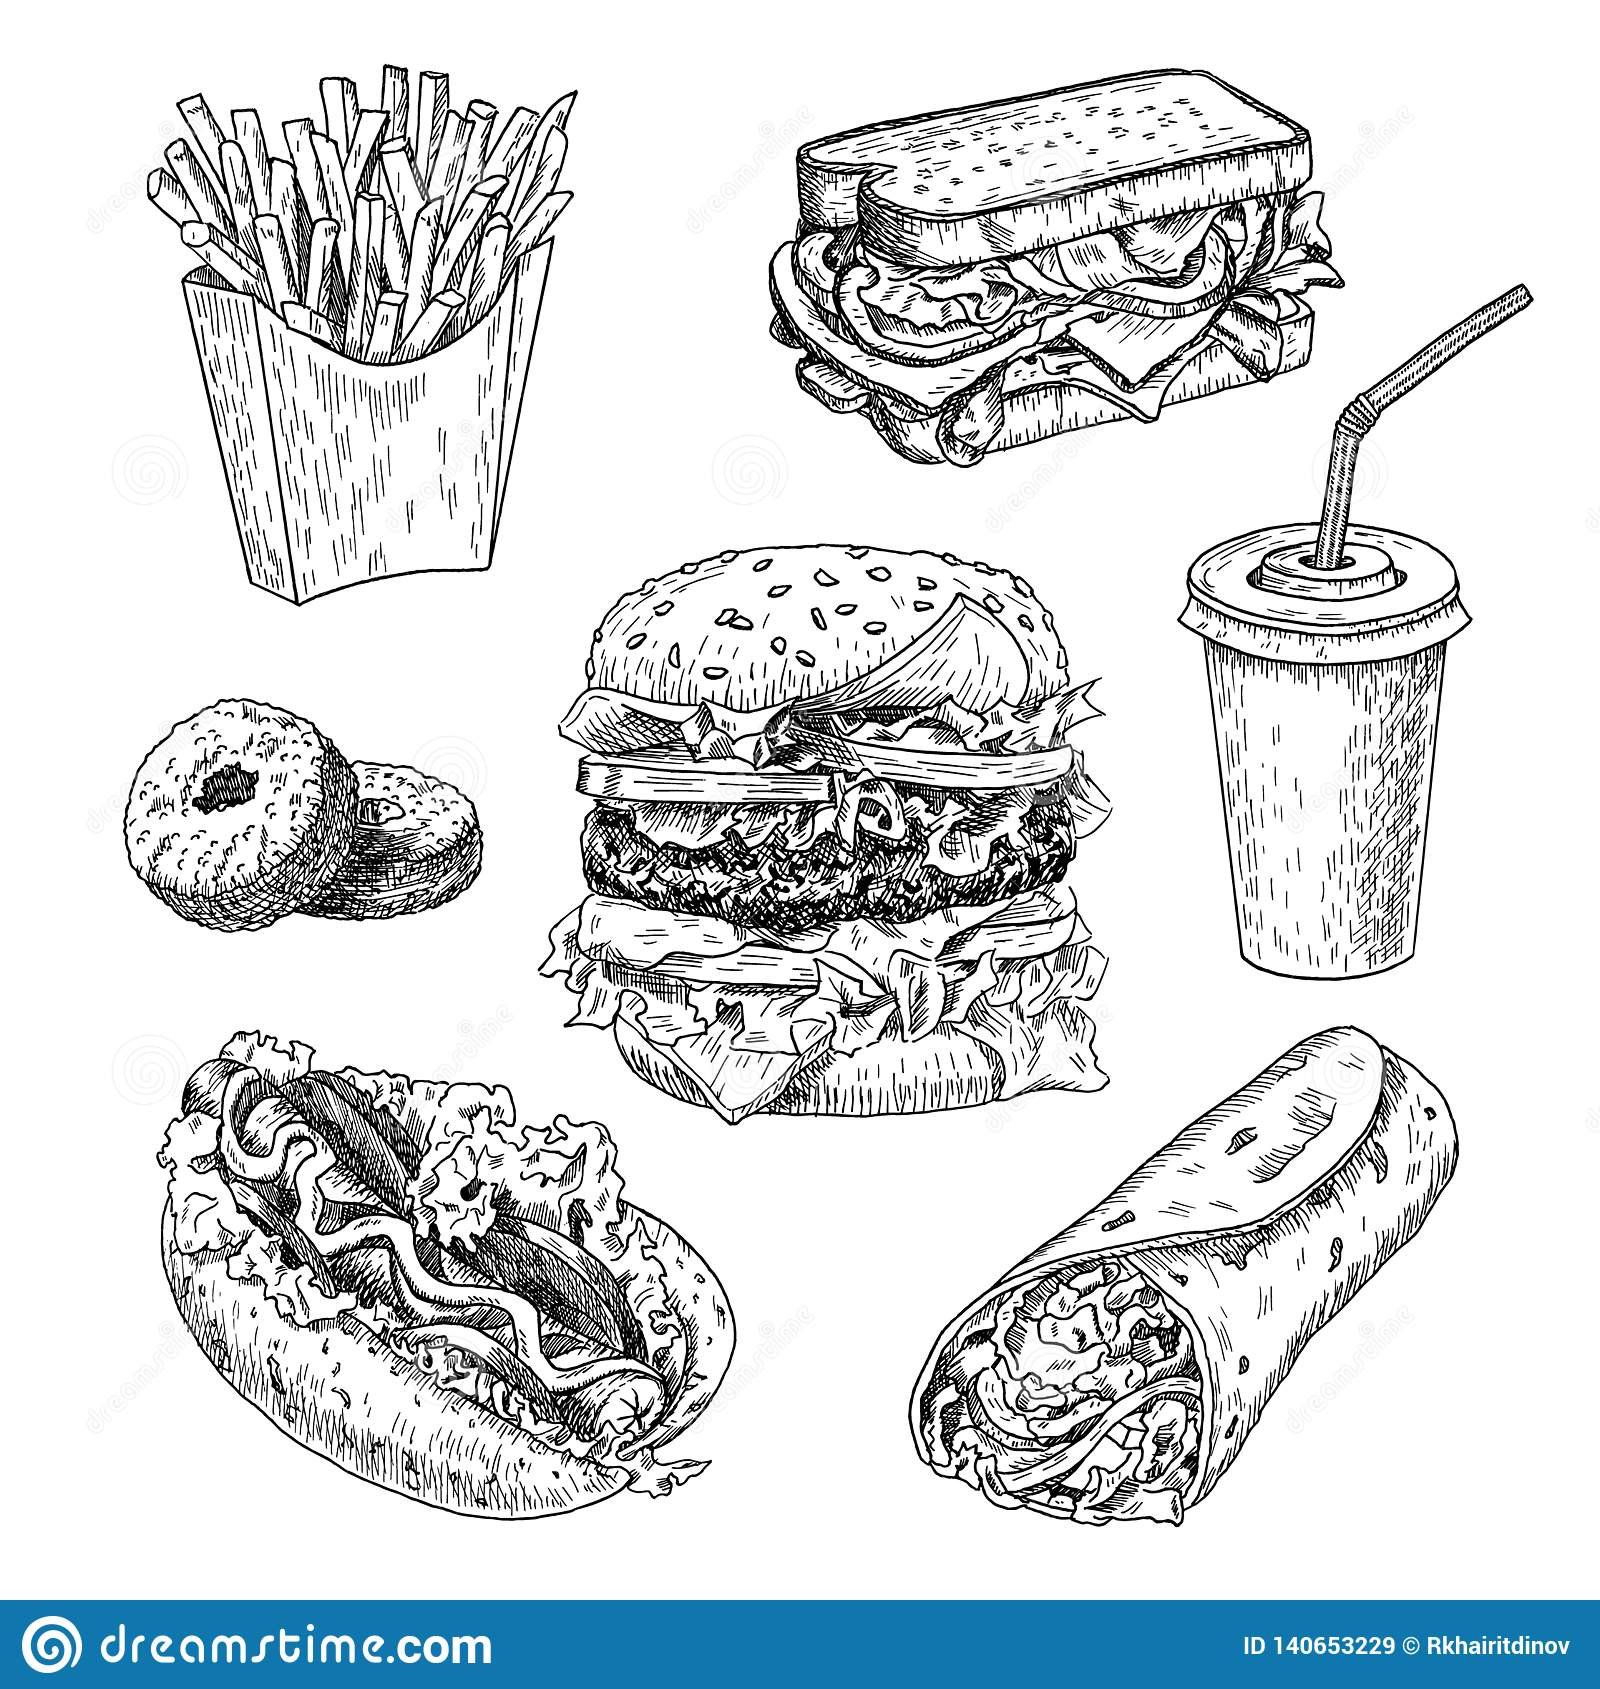 Fast food hand drawn vector illustration. Hamburger, french fries, sandwich, hot dog, doughnuts, burrito and cola engraved style.